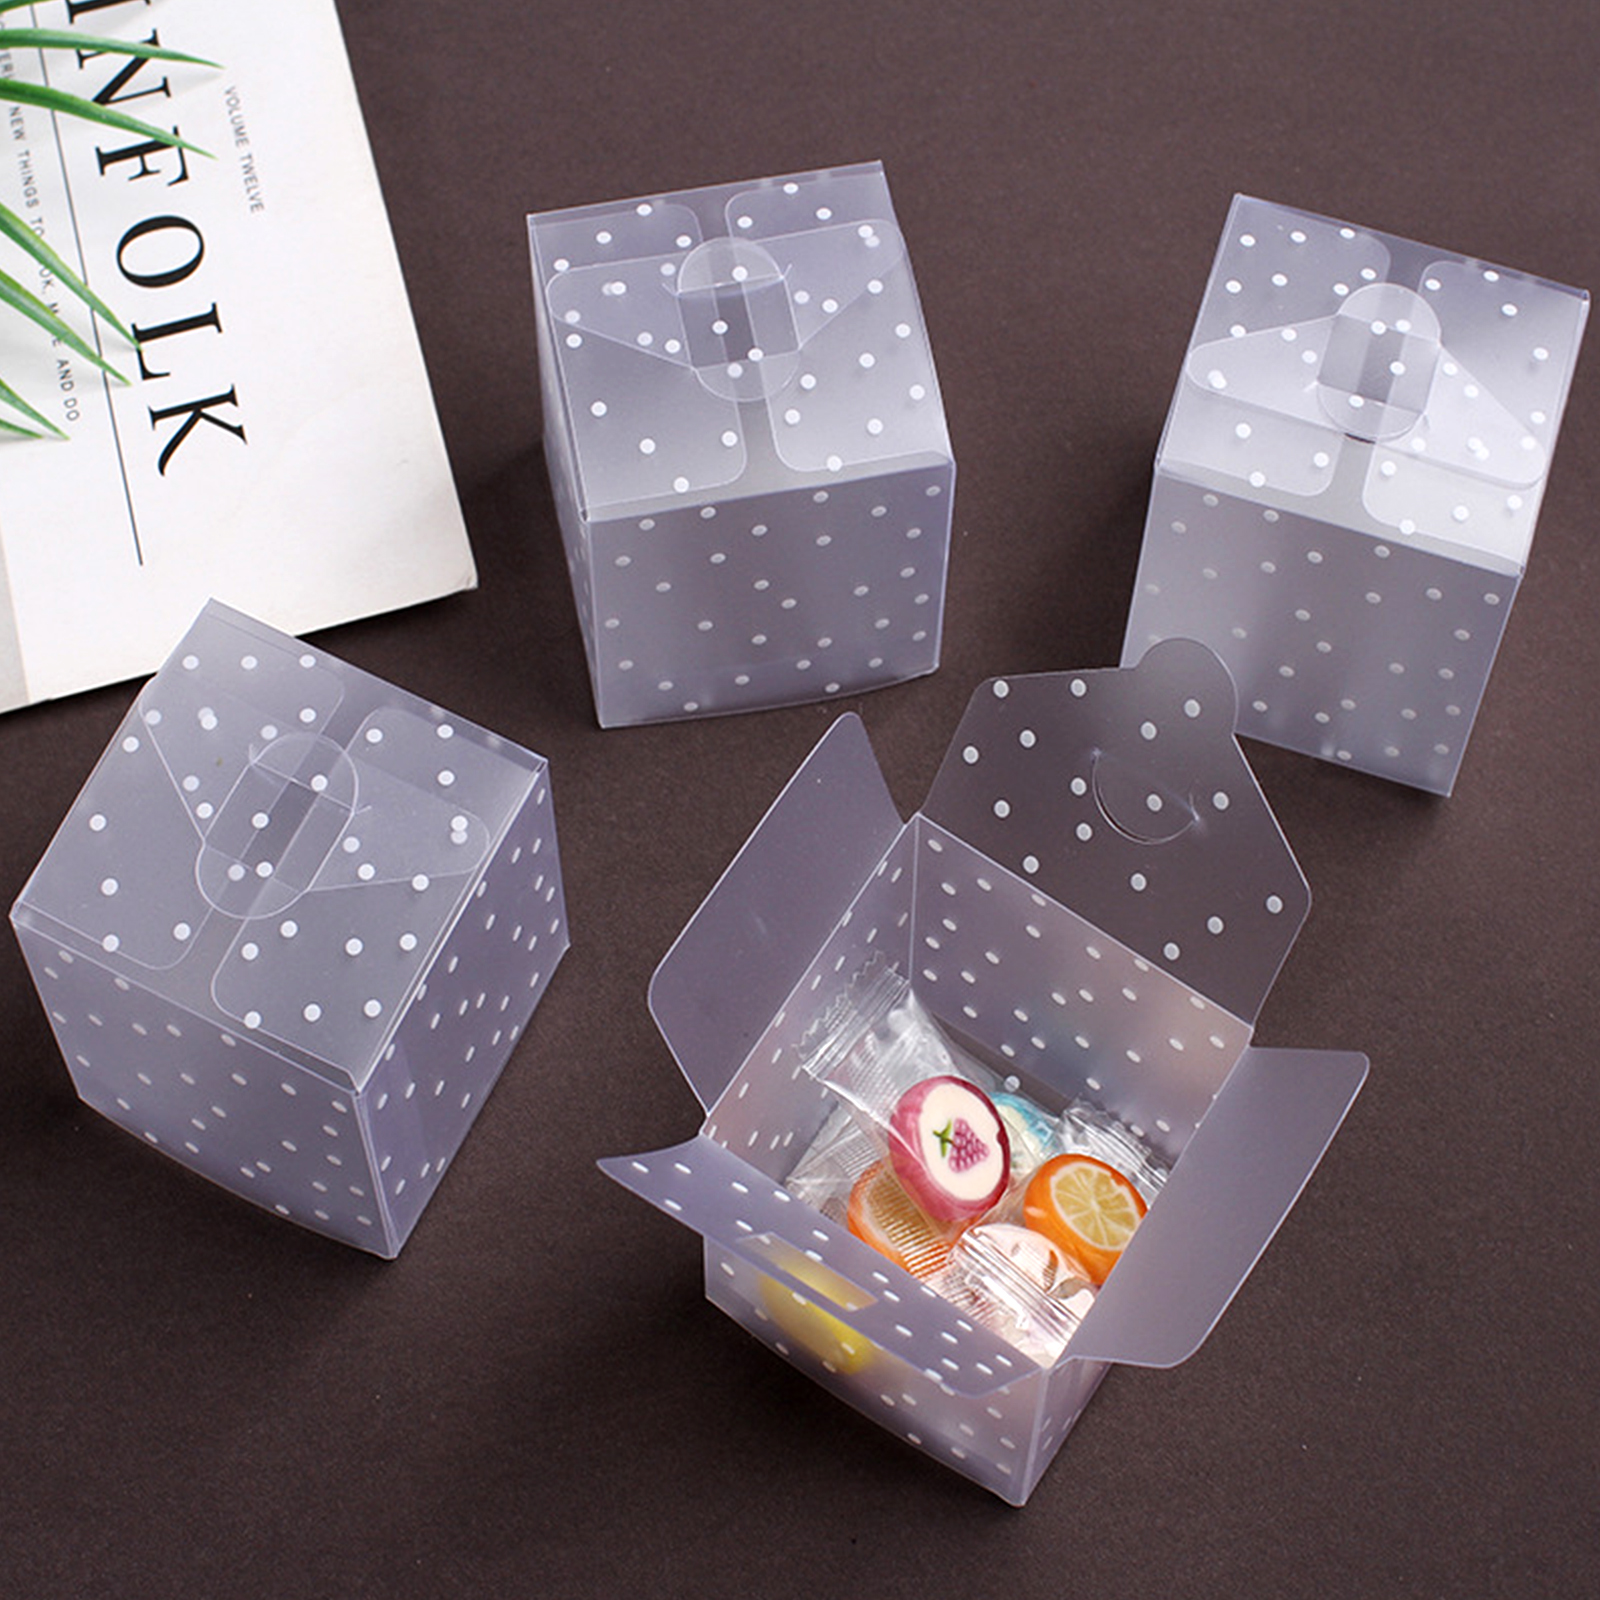 50pcs Pillow Shape Clear PVC Candy Box Packaging Gift Box Wedding Party Fav Hy Wedding Supplies